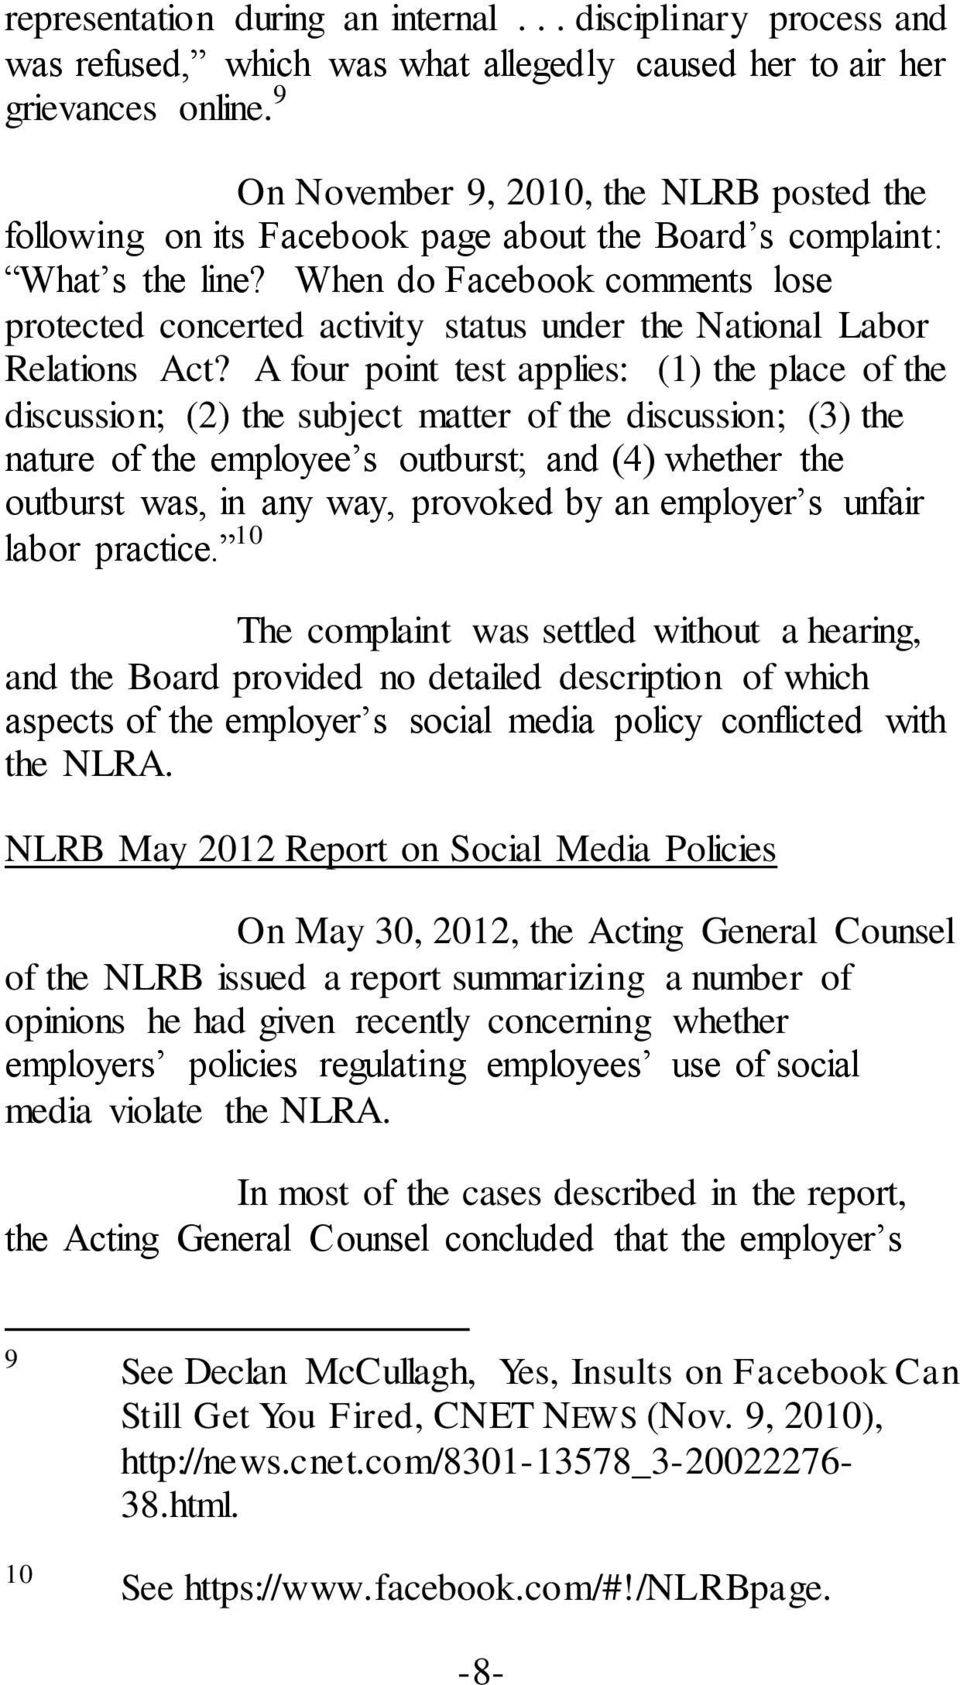 When do Facebook comments lose protected concerted activity status under the National Labor Relations Act?